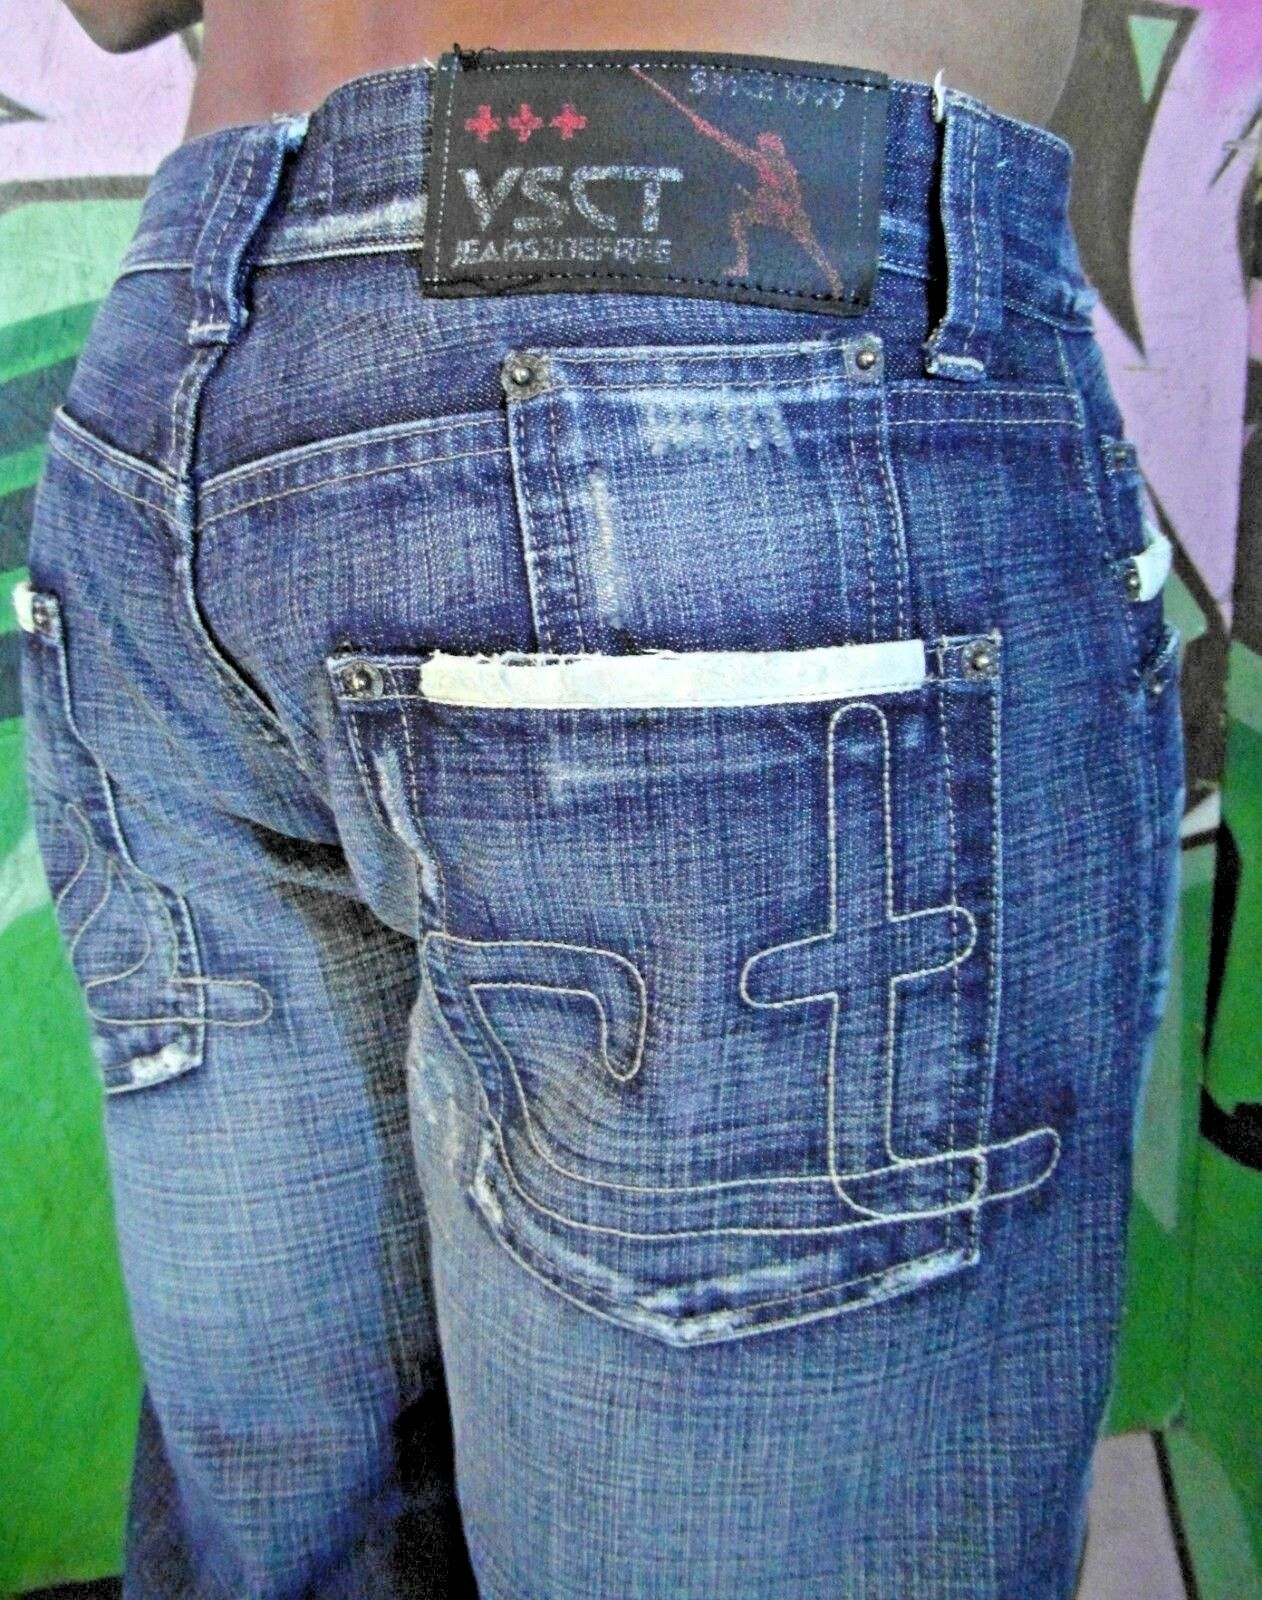 MENS VSCT CLUBWEAR JEANS2BEFREE MEDIUM JEANS blueE DENIM DISTRESSED TROUSERS 34